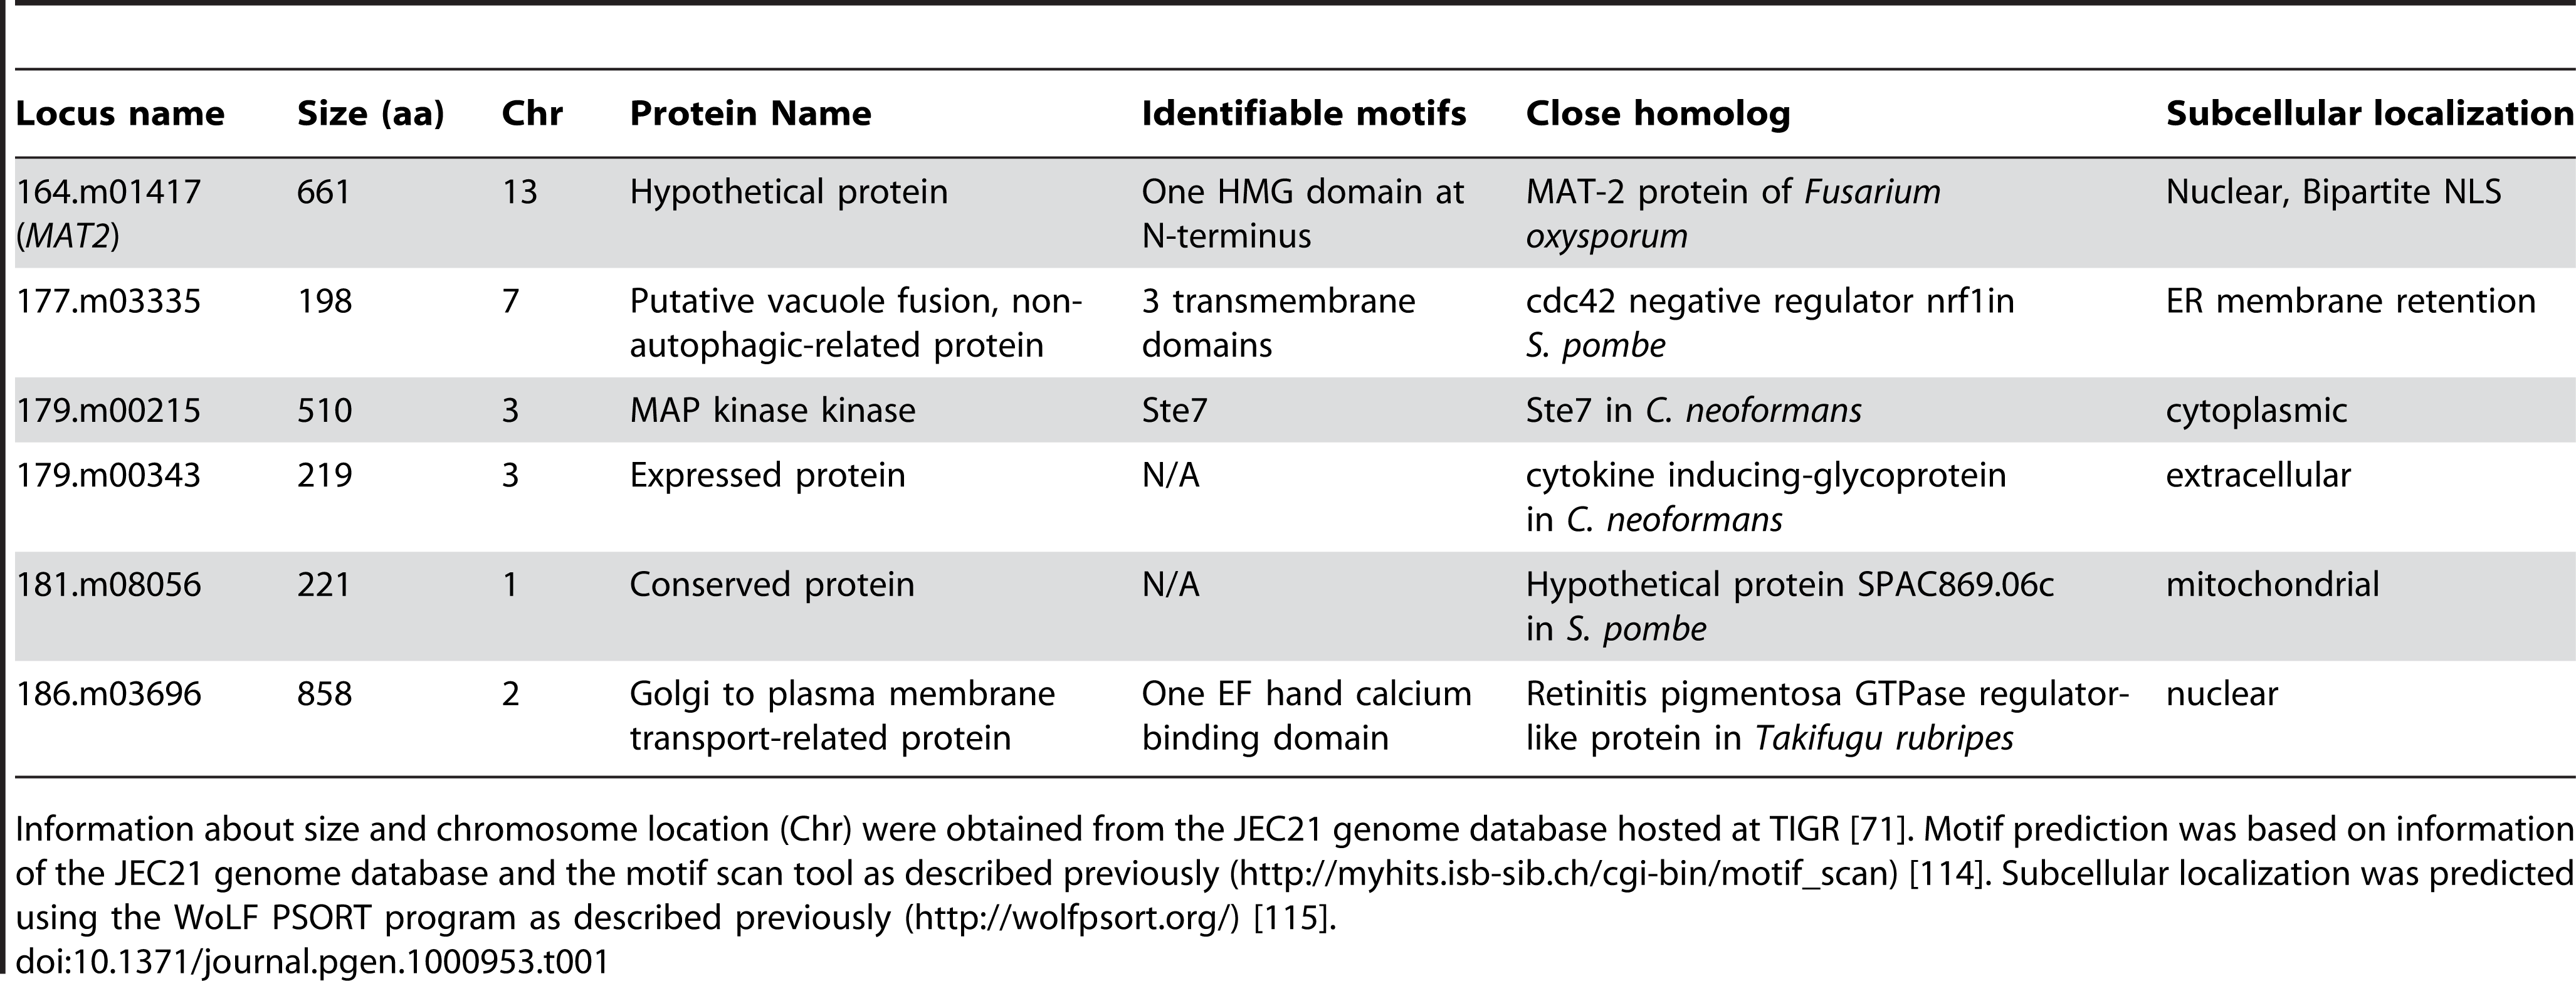 Genes necessary for filamentation based on insertional mutant phenotype.